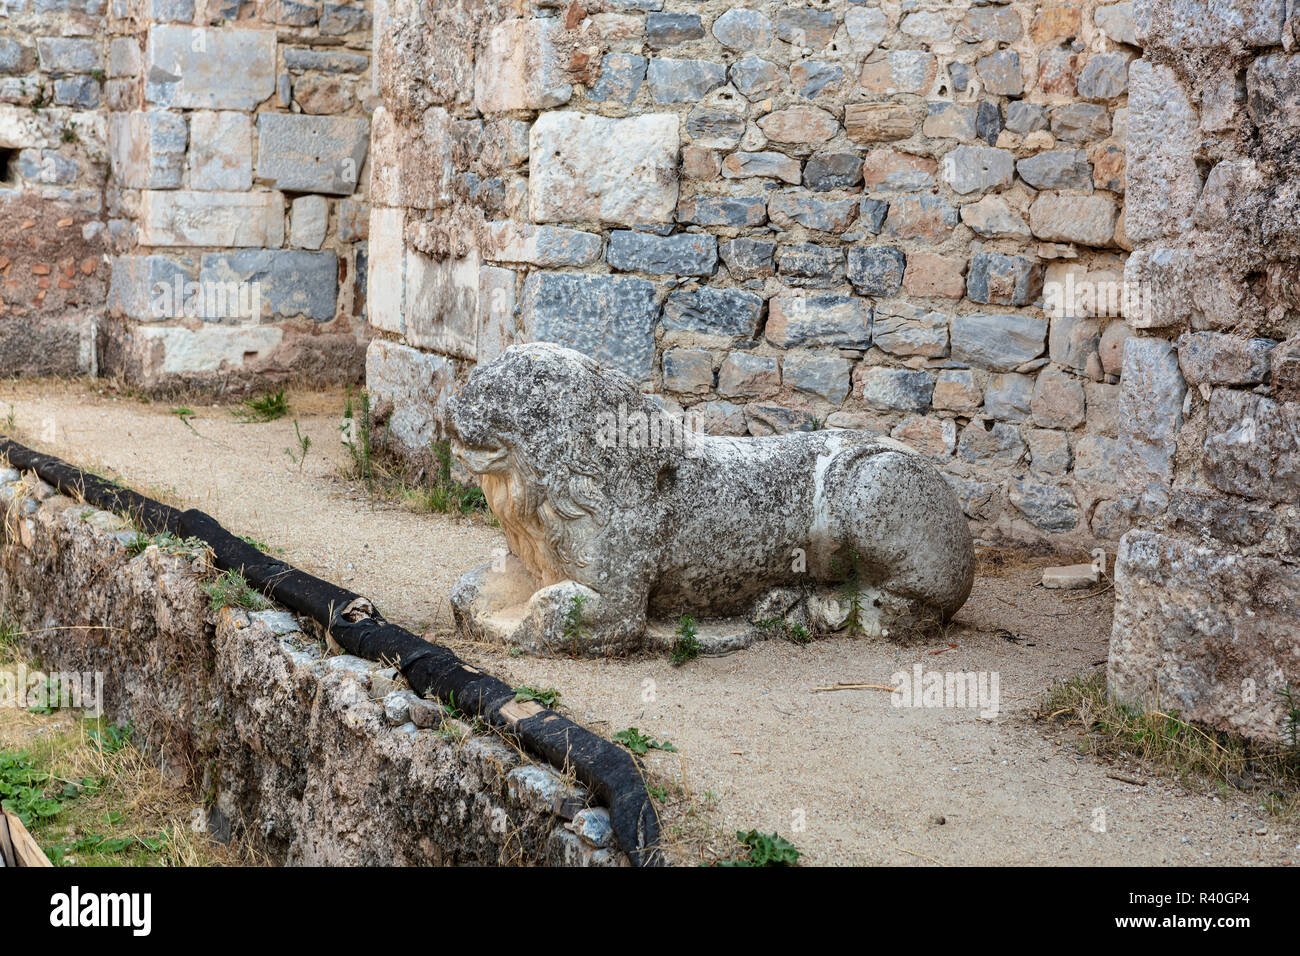 Sculpture of lion at the ruins of Faustina Baths at the Miletus archaeological site in the Aydin Province, Turkey. - Stock Image